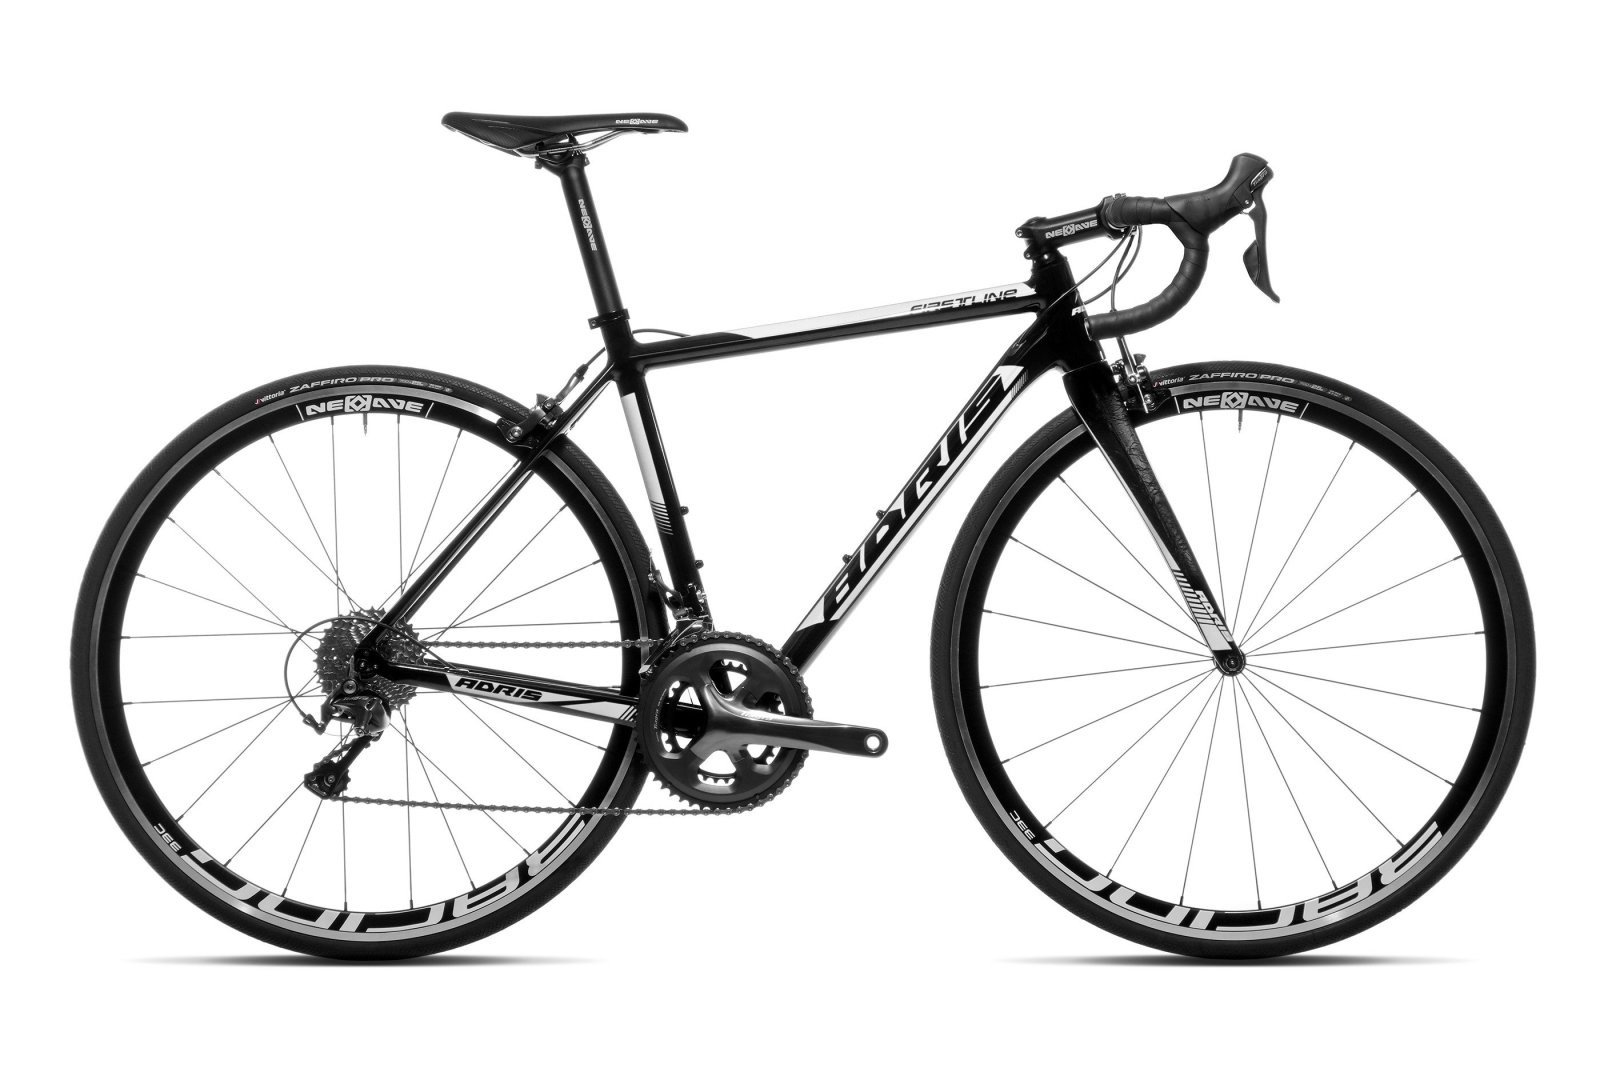 VELO ADRIS FIRSTLINE 5.1 SHIMANO TIAGRA 4700 10V